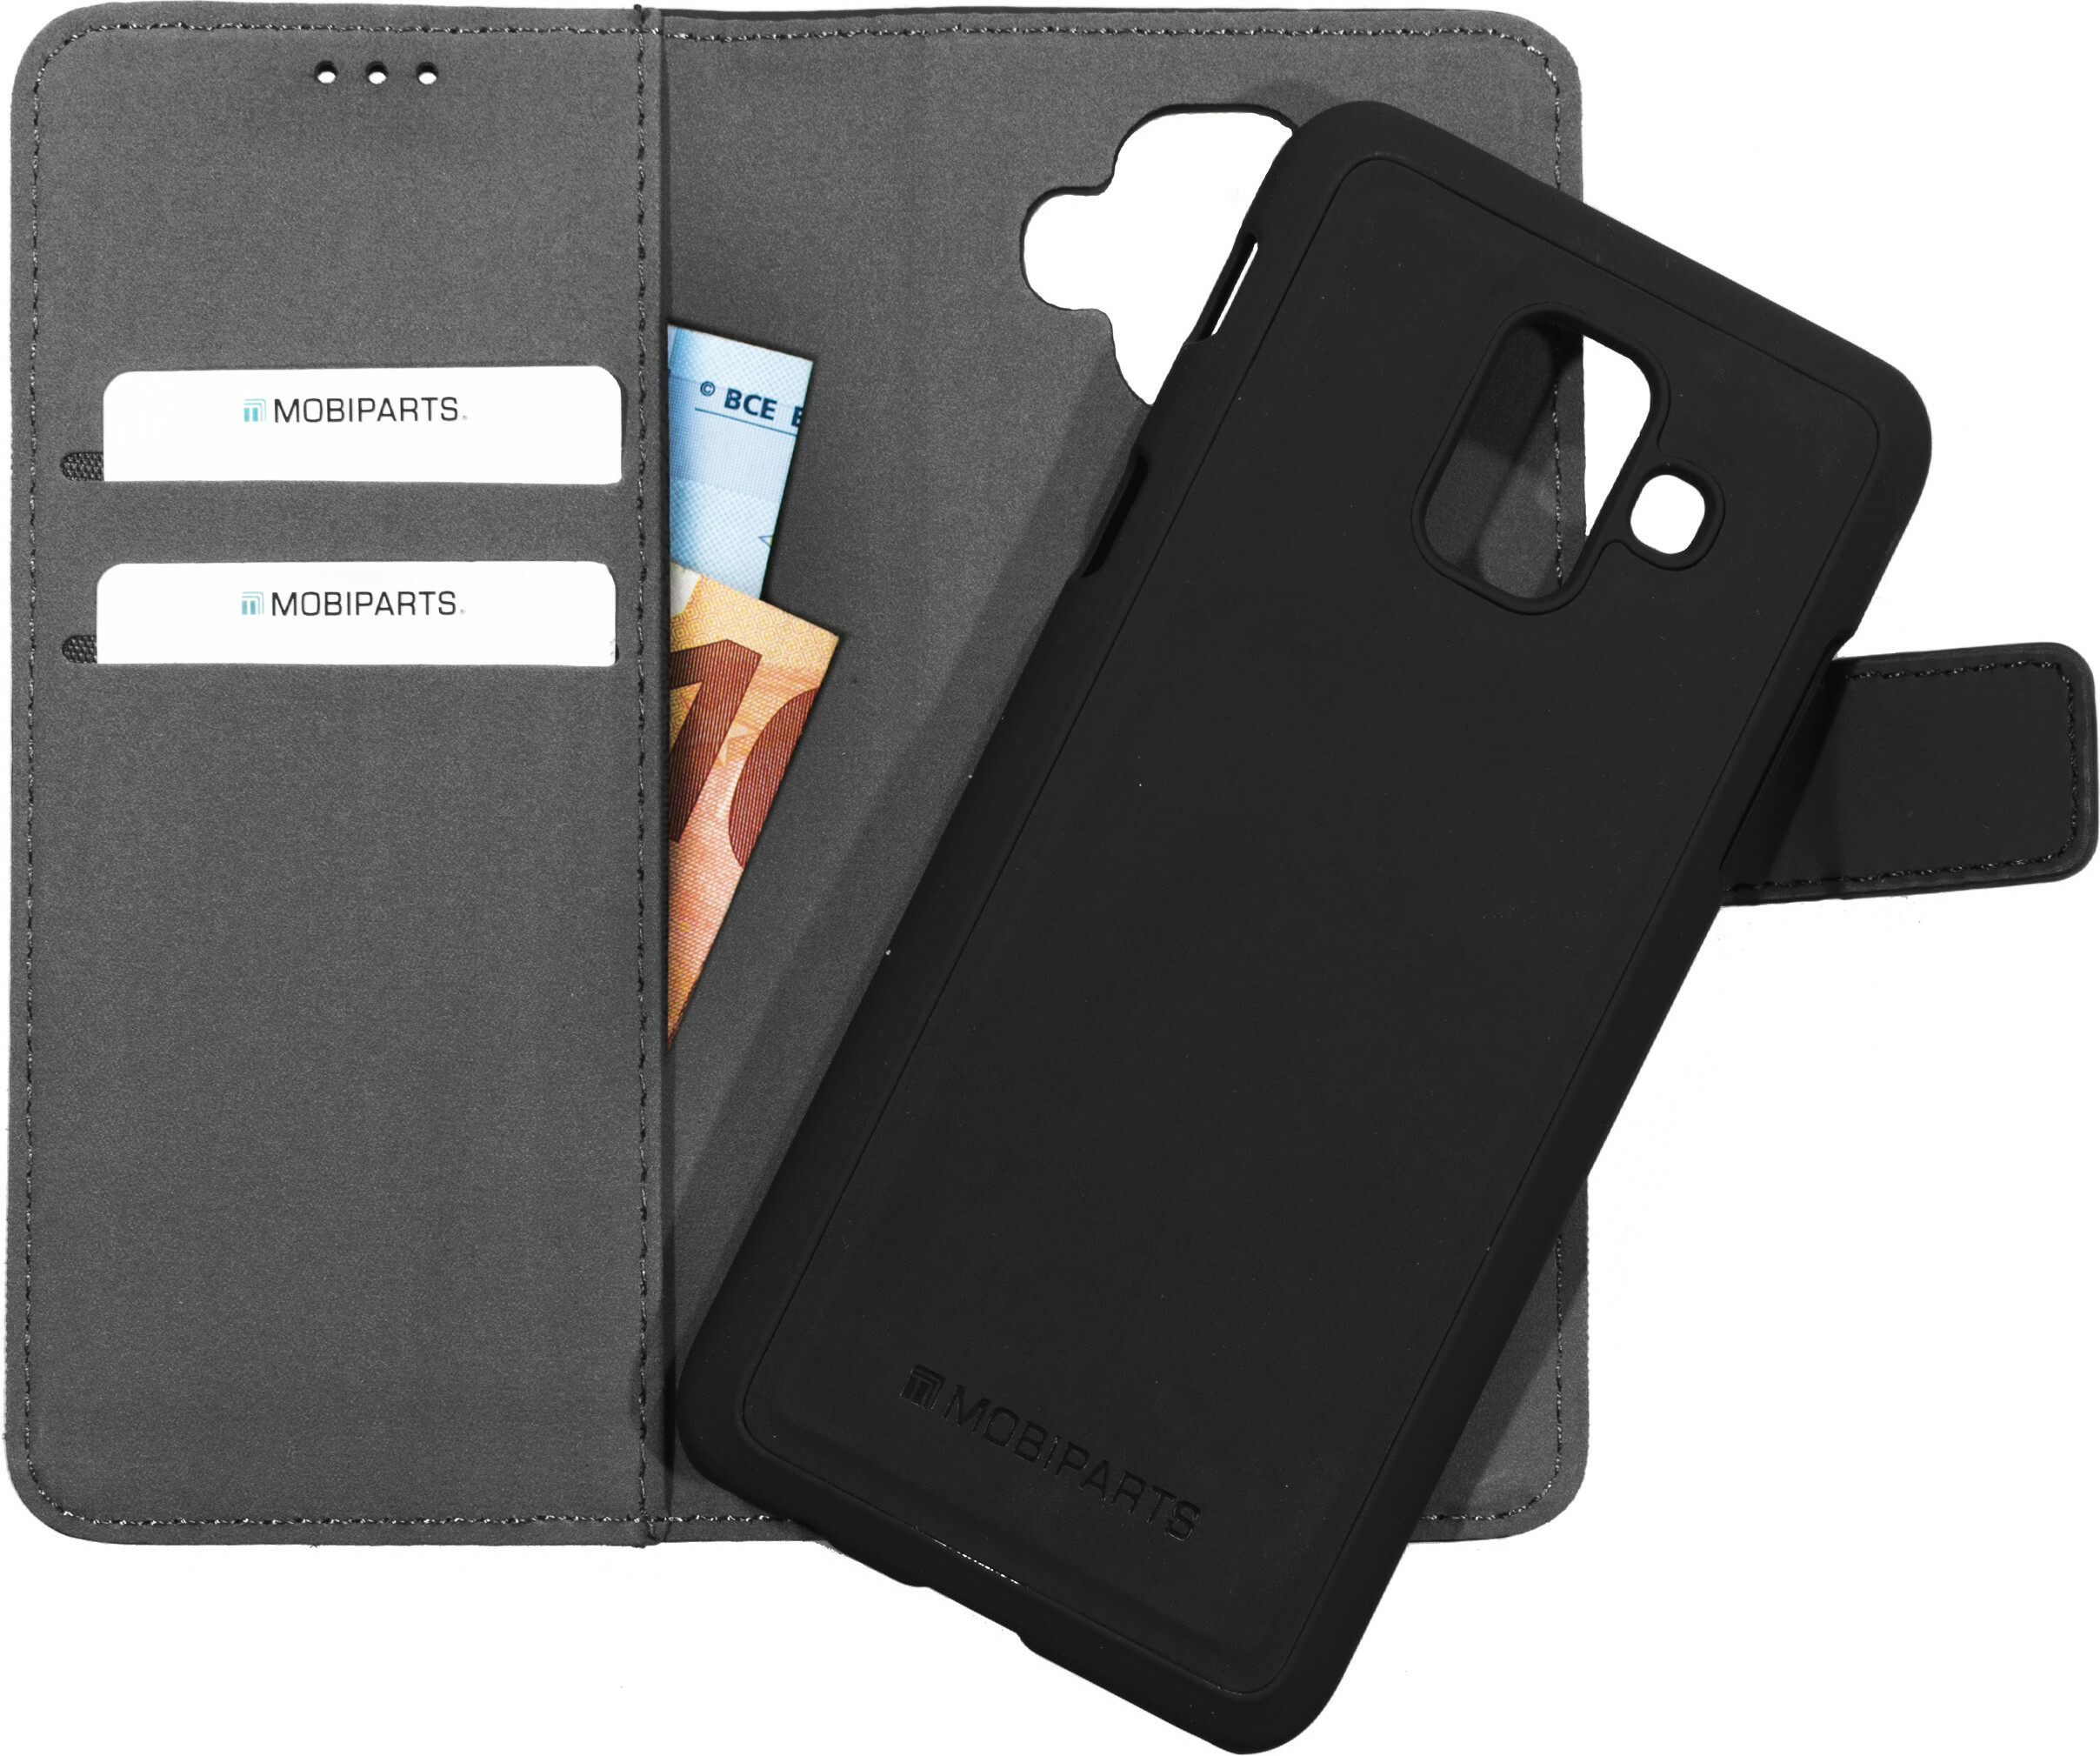 Mobiparts 2 in 1 Premium Wallet Case Samsung Galaxy A6 (2018) Black